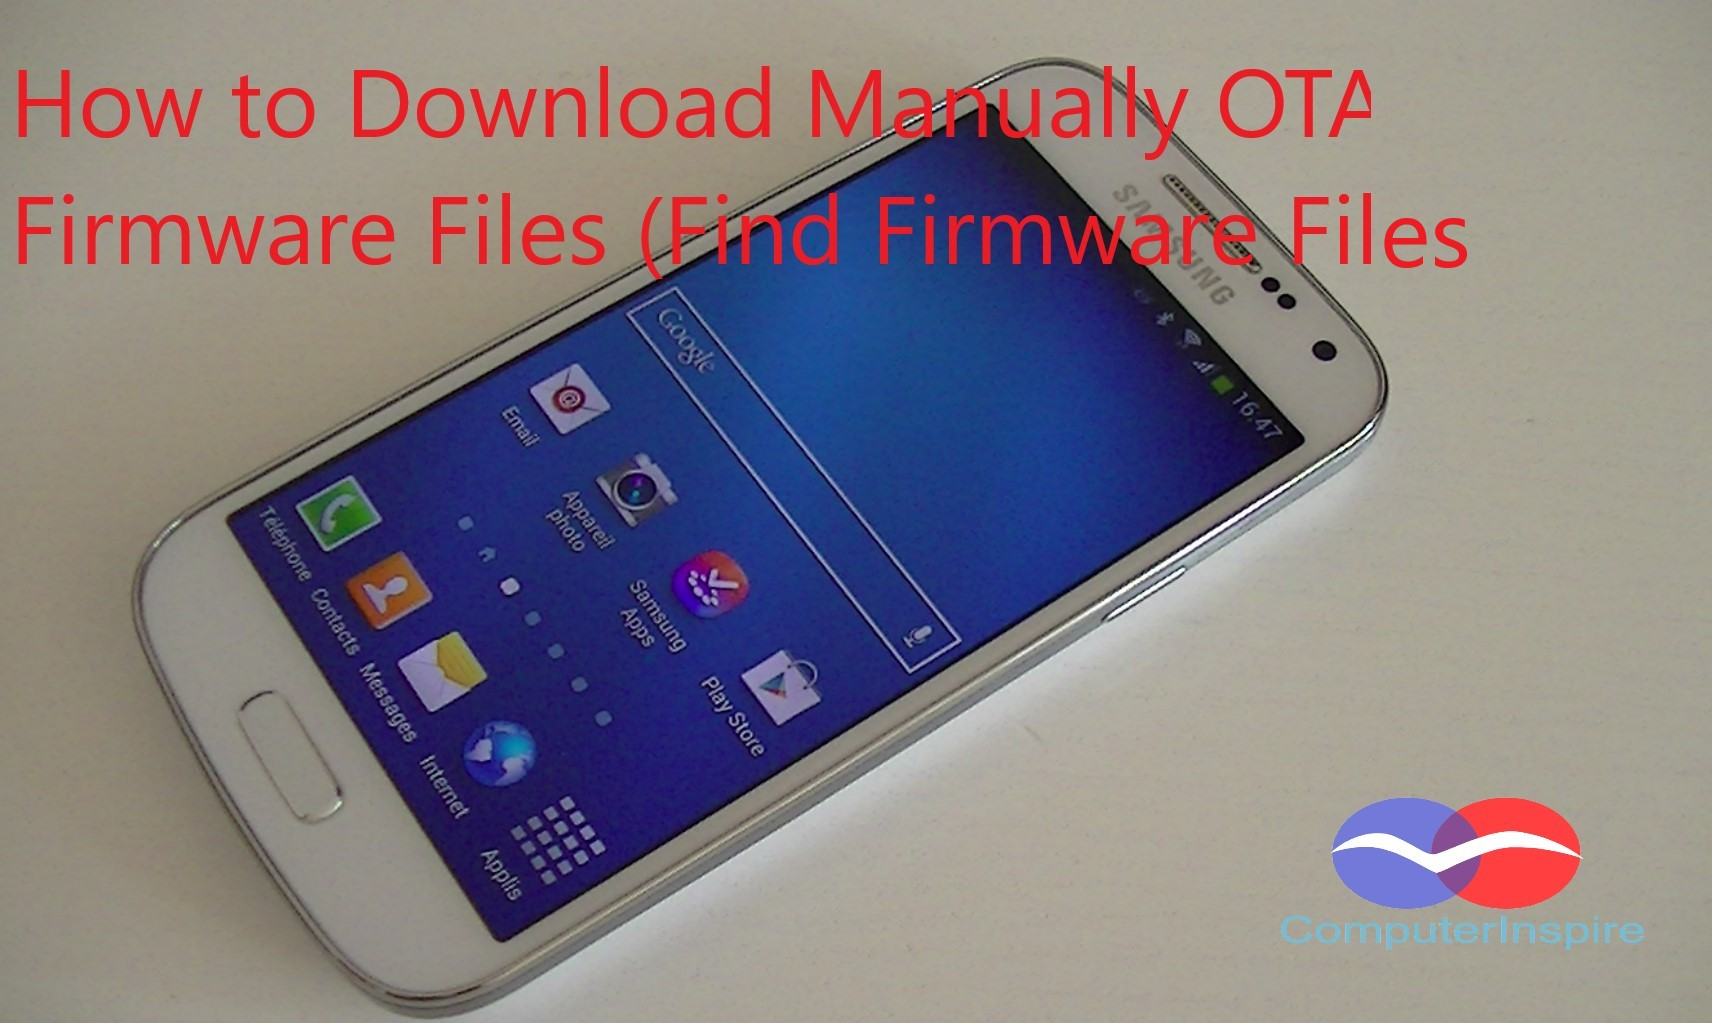 How to Download Manually OTA Firmware Files (Find Firmware Files)